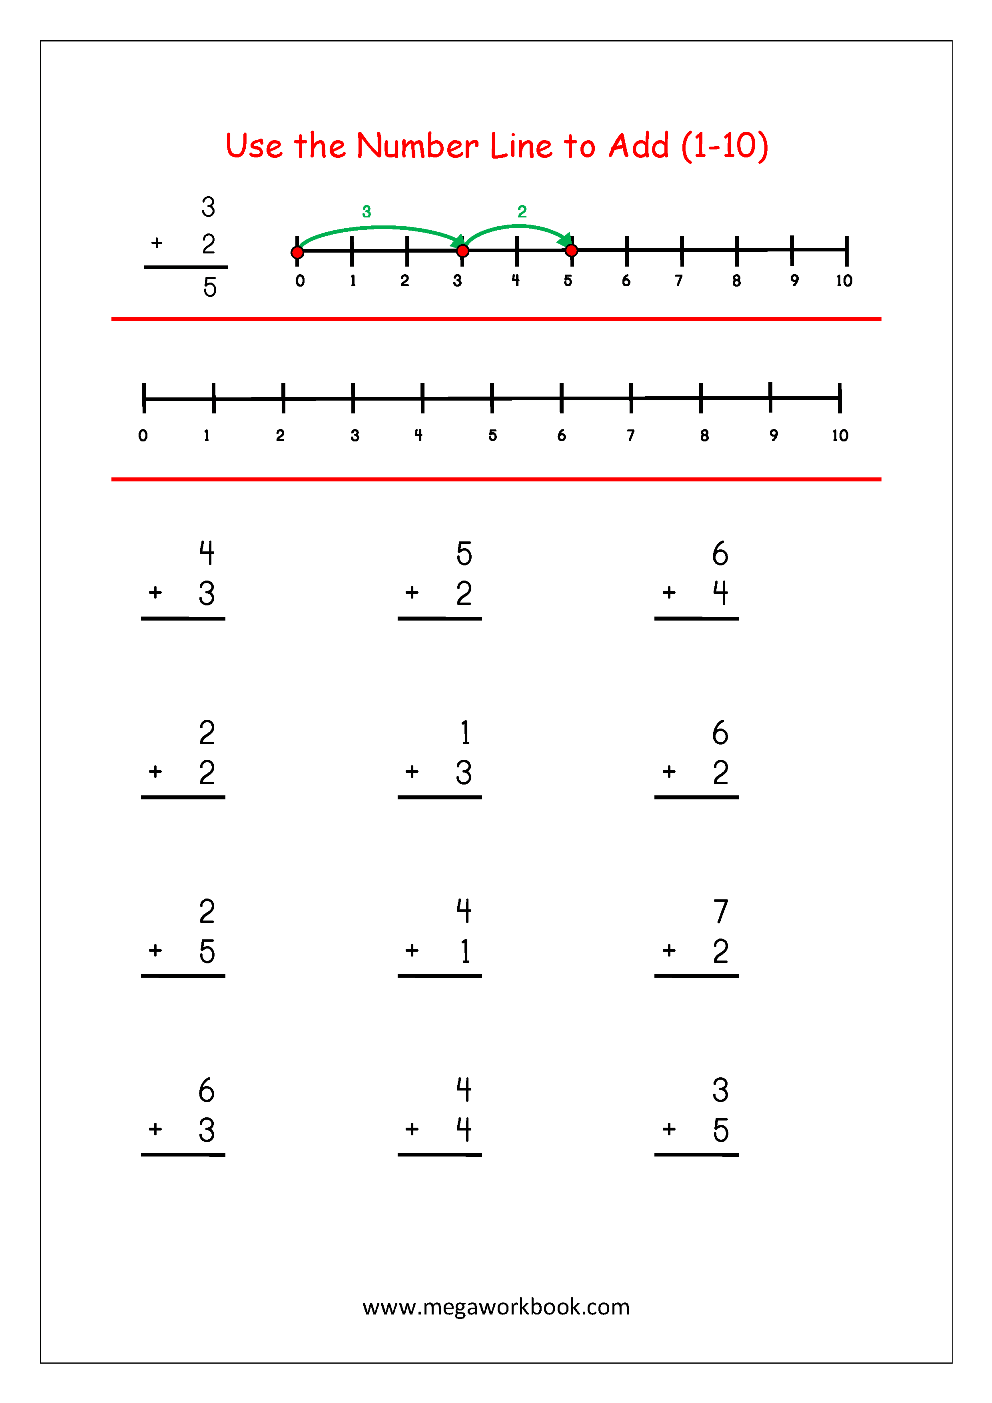 medium resolution of Free Printable Number Addition Worksheets (1-10) For Kindergarten And Grade  1- Addition On Number Line - Addition With Pictures/Objects - MegaWorkbook